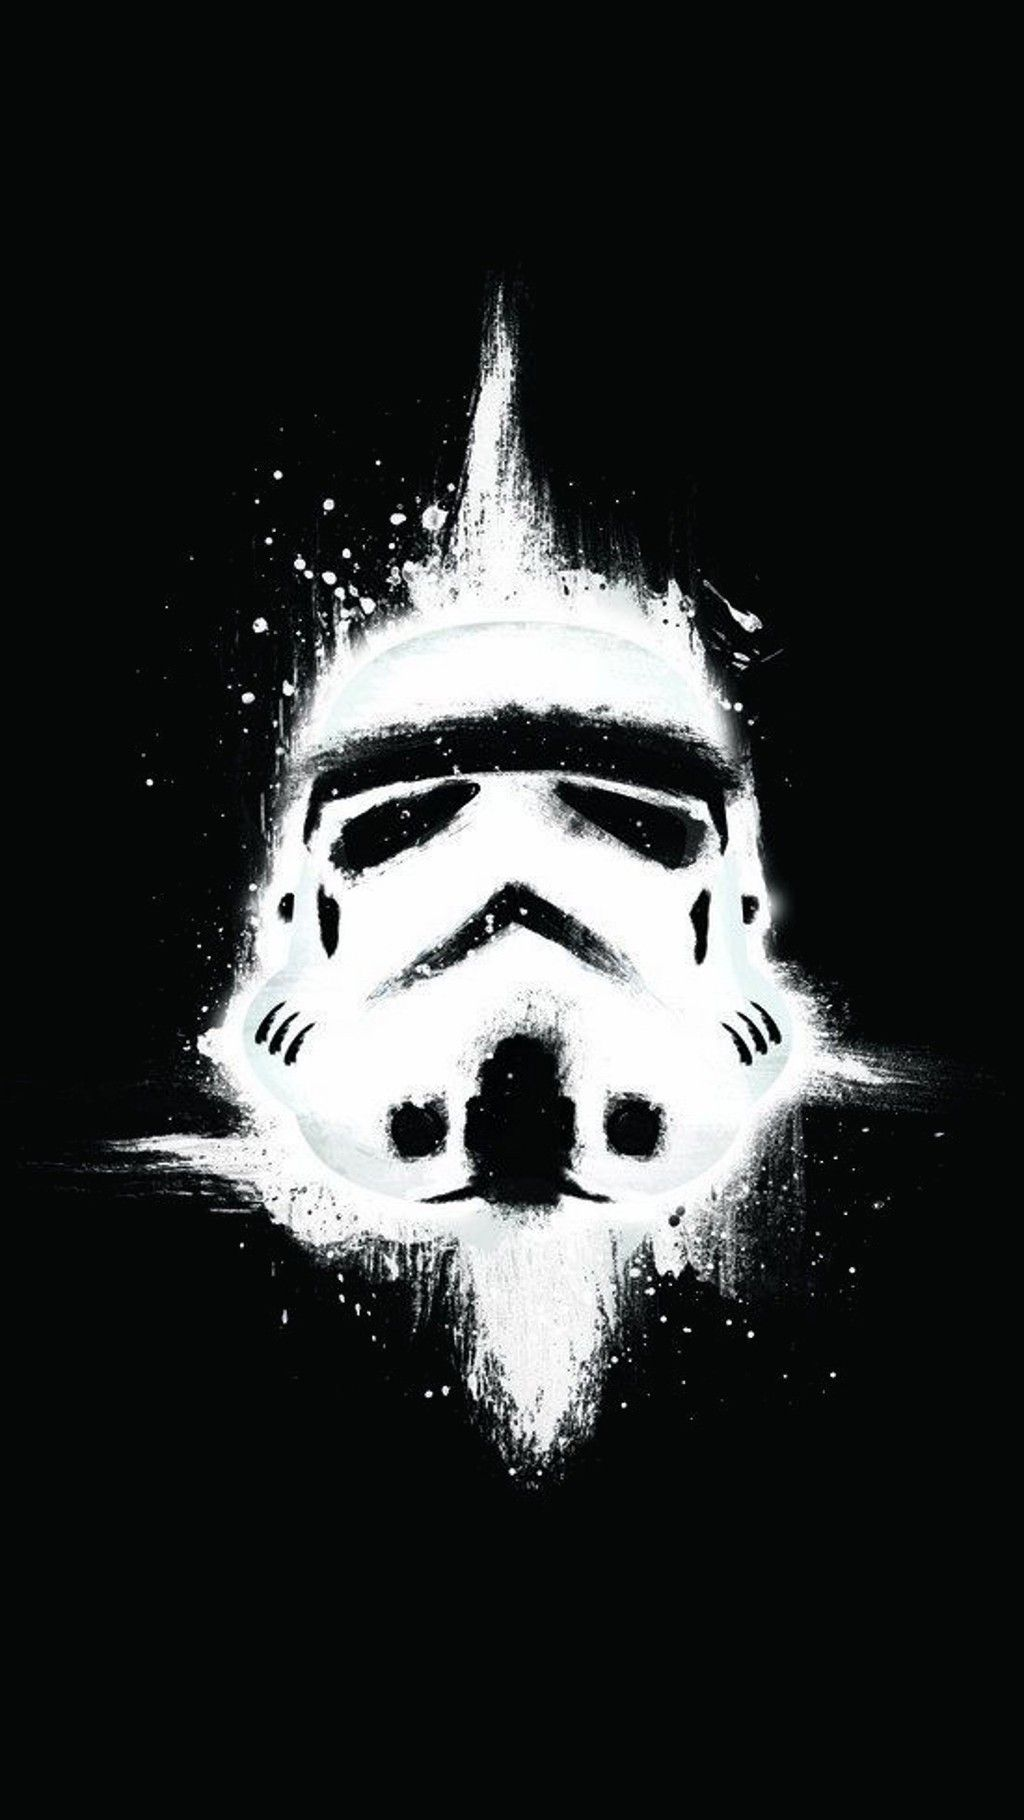 Stormtrooper Dark Artwork Wallpaper Star Wars Pop Art Star Wars Art Star Wars Artwork